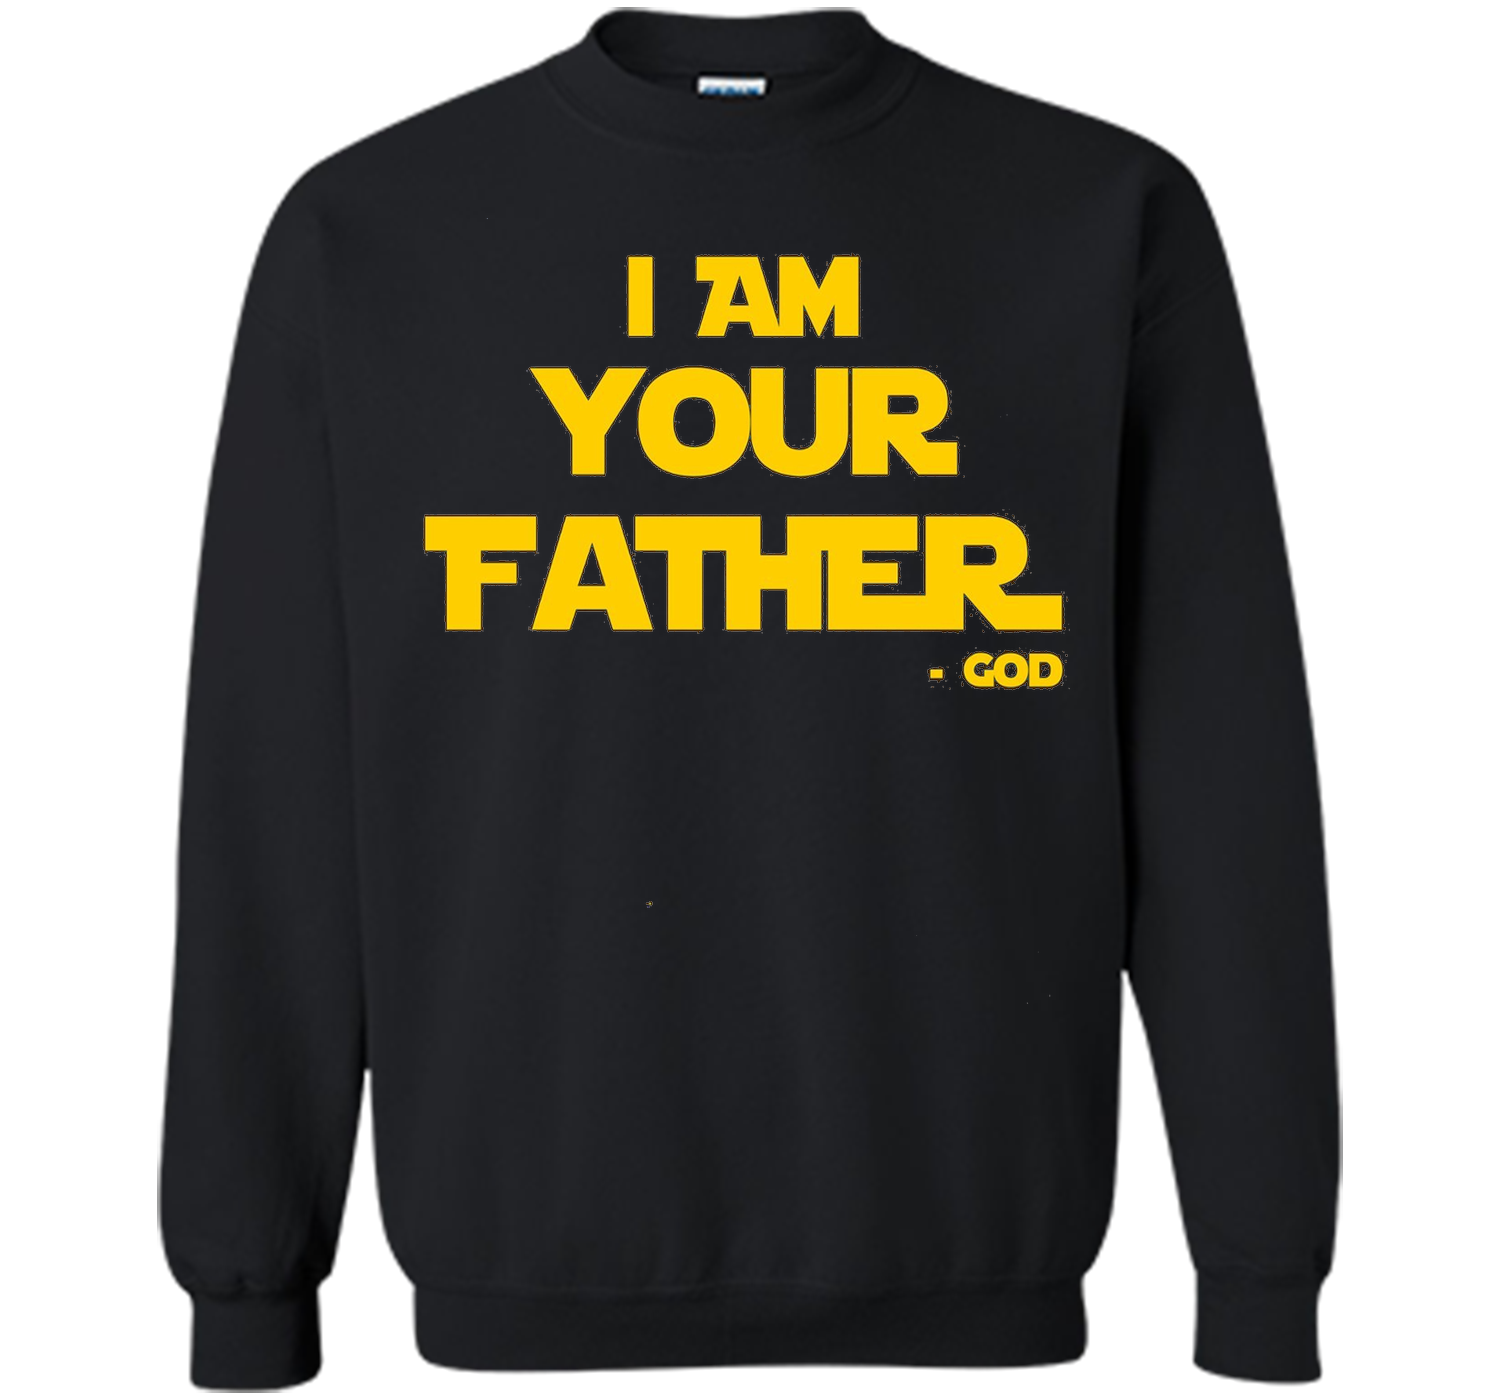 I AM YOUR FATHER - Christianity and Catholic Church T-Shirts